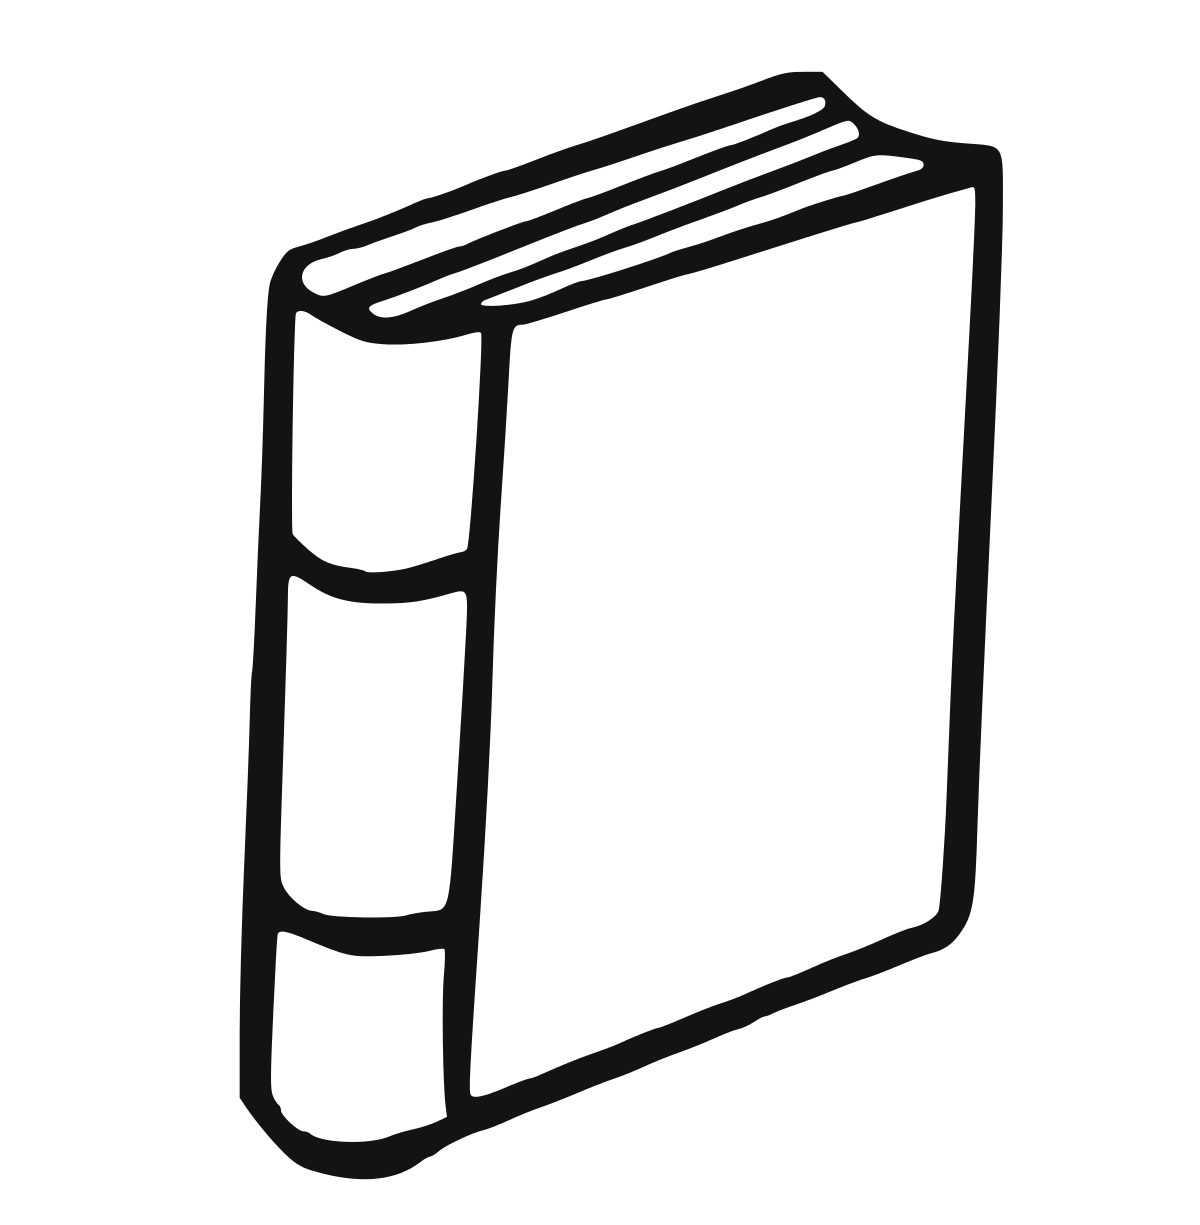 Book party clipart jpg black and white library National People's Party (India) - Wikipedia jpg black and white library